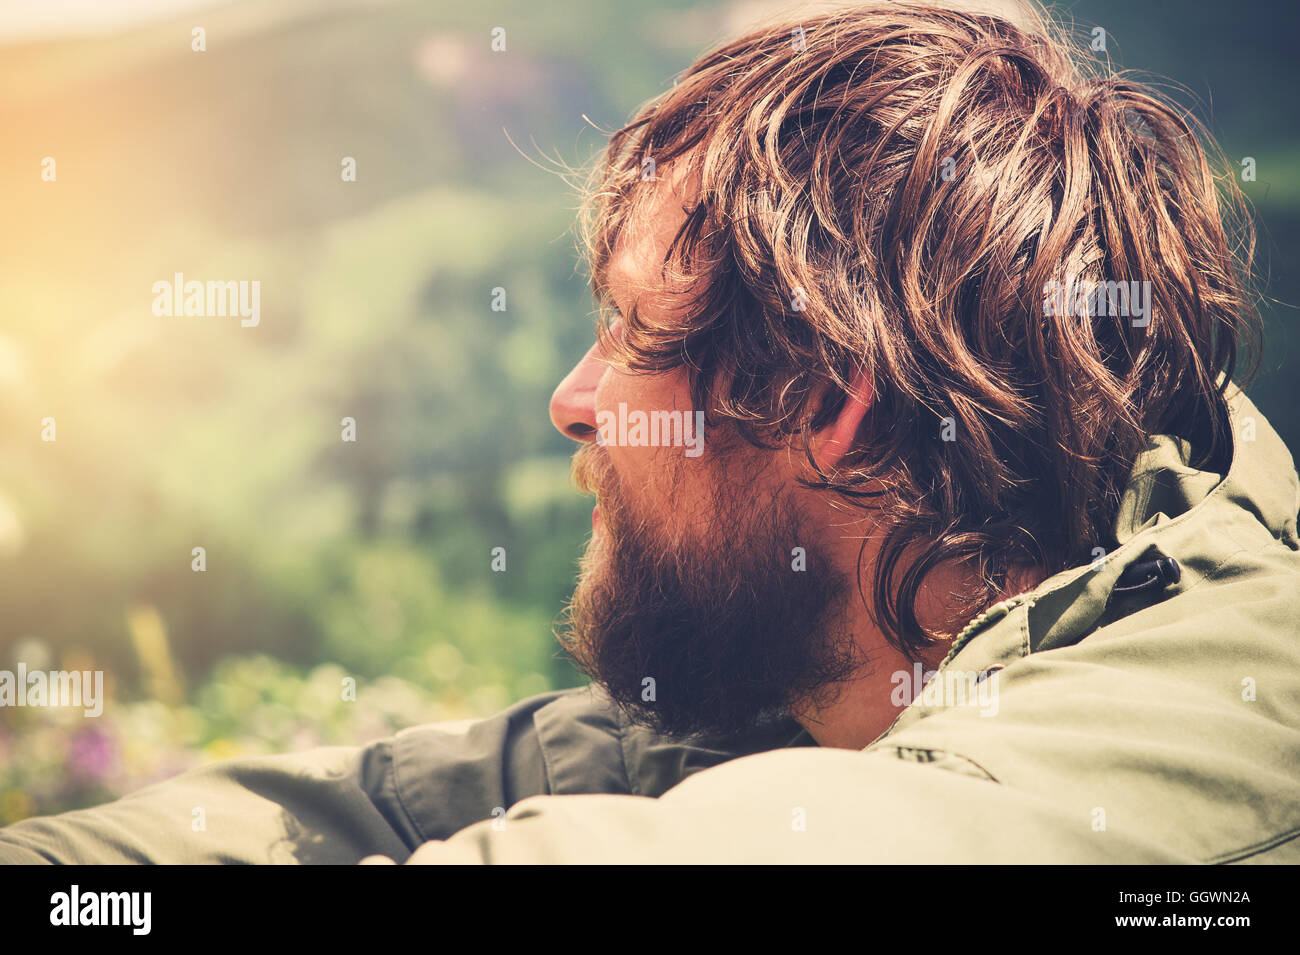 Young Man bearded relaxing alone outdoor Travel Lifestyle concept mountains nature on background Summer journey - Stock Image